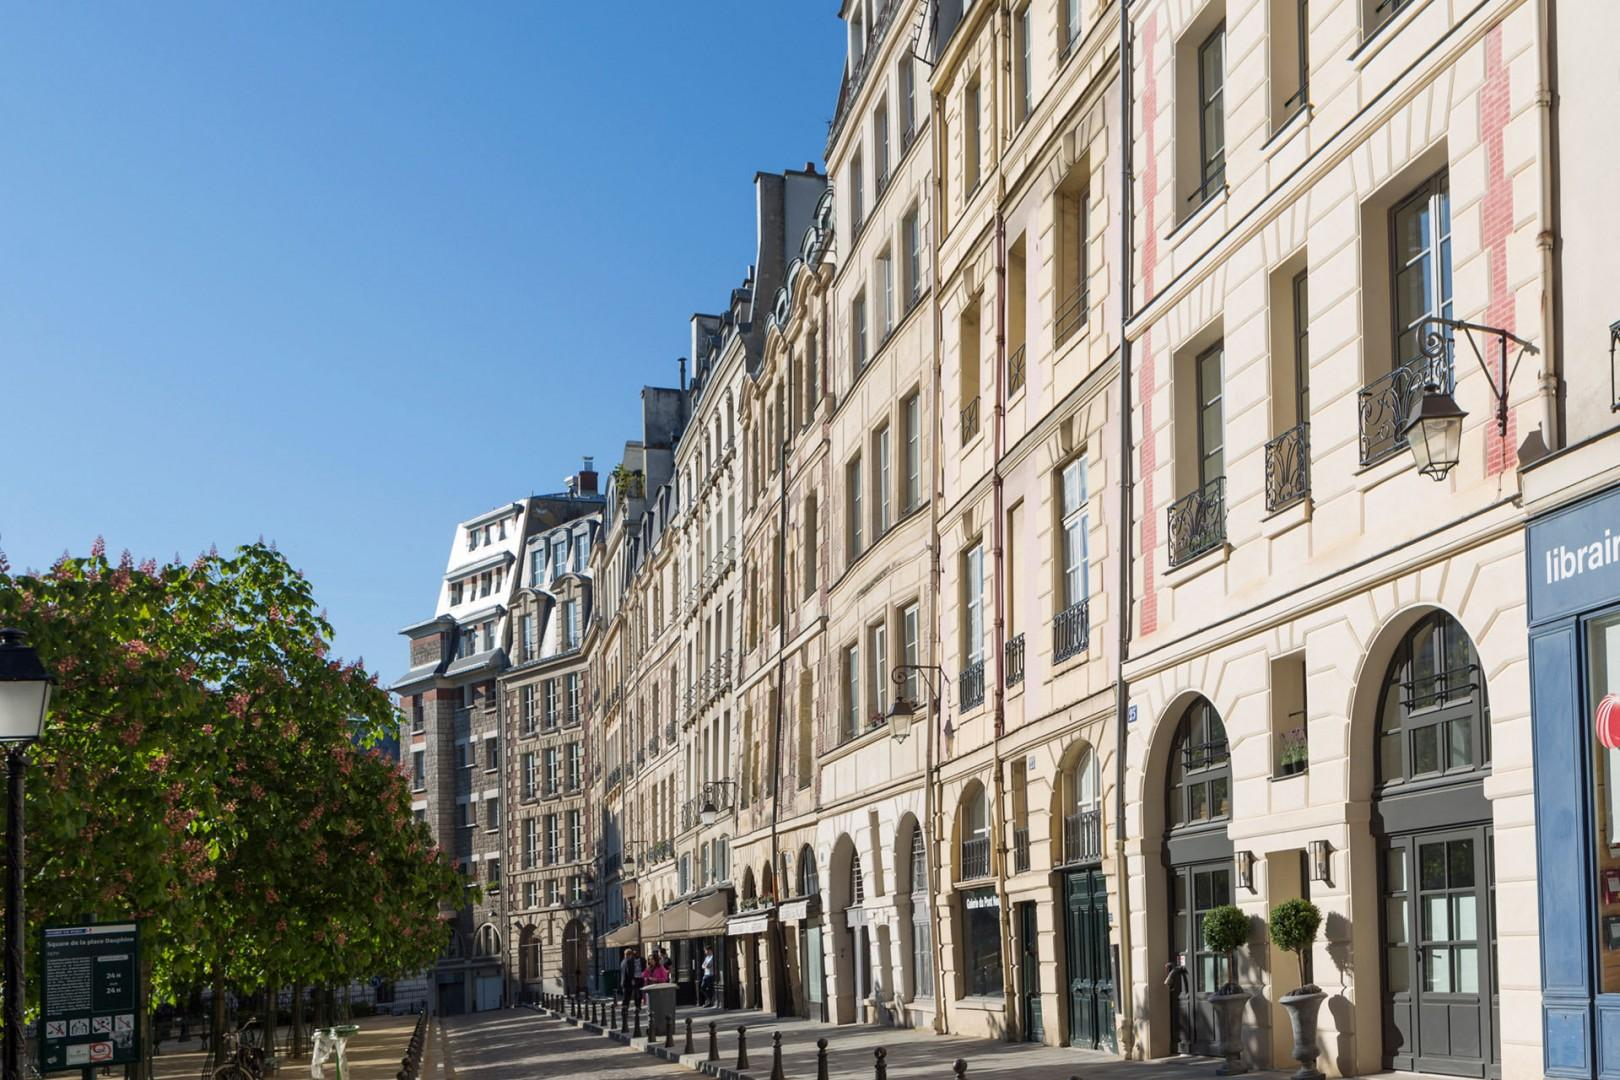 14-place-dauphine-view-down-street